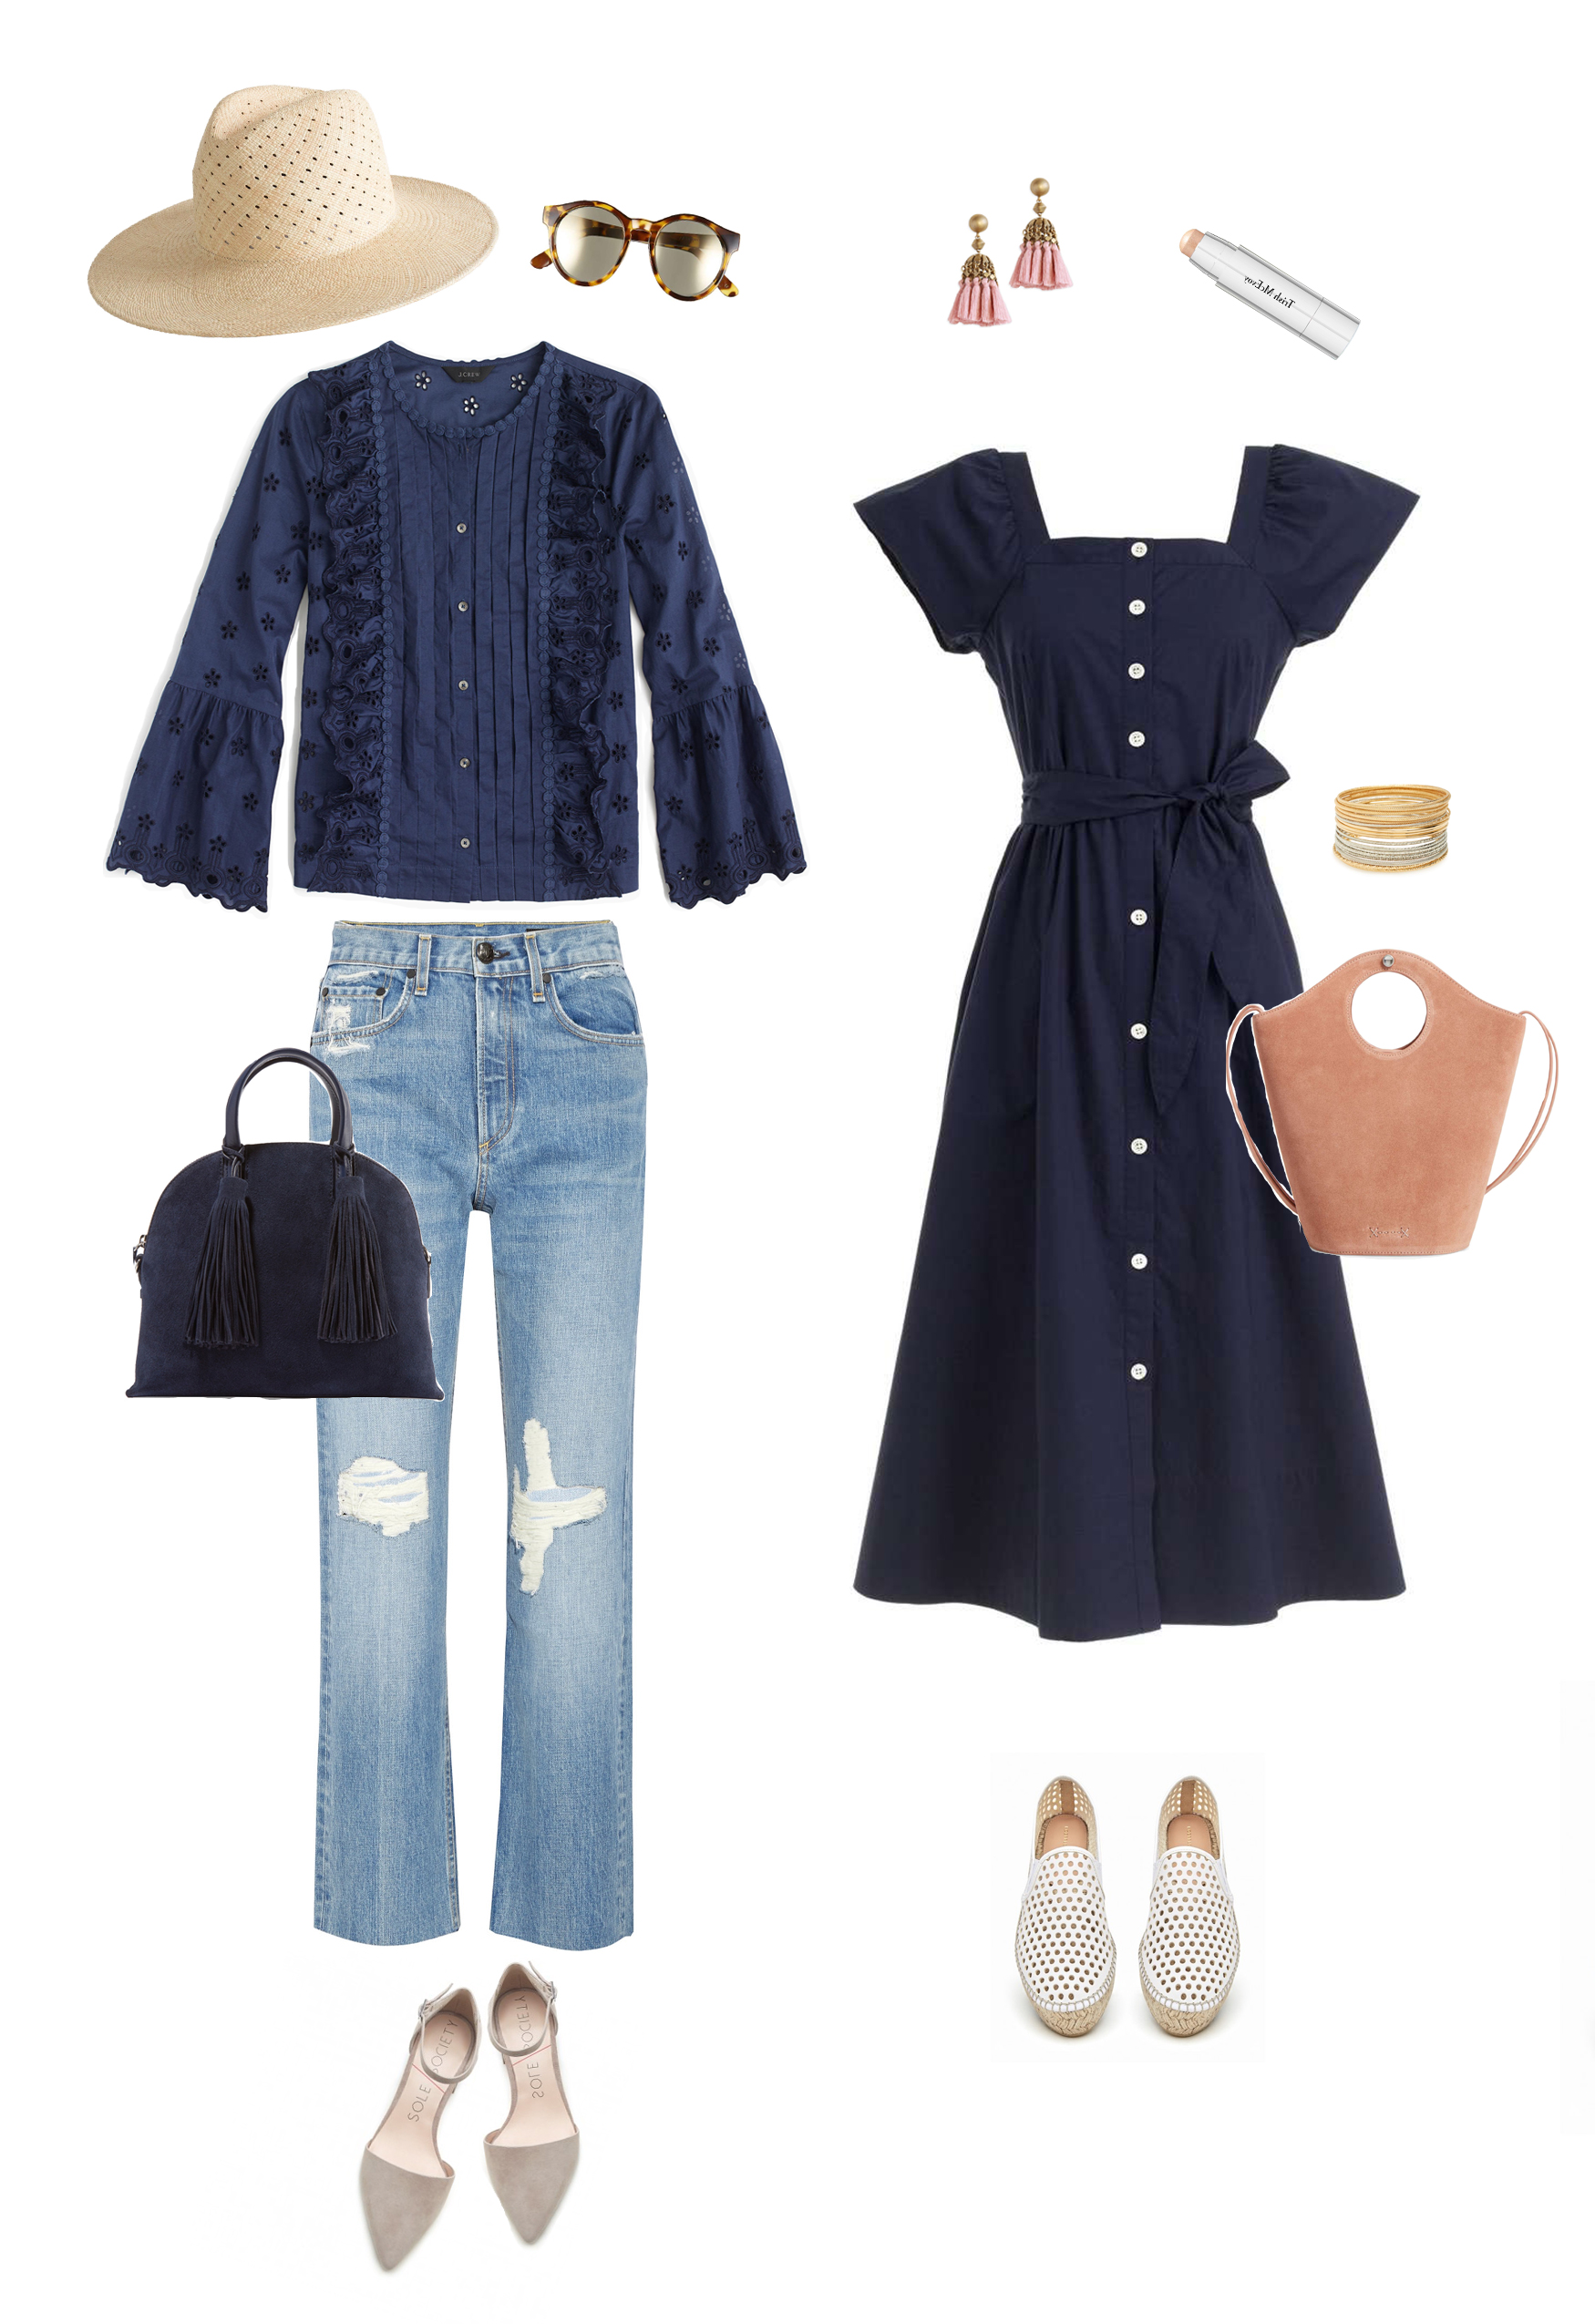 Liz Adams shares end of summer into fall outfit ideas.